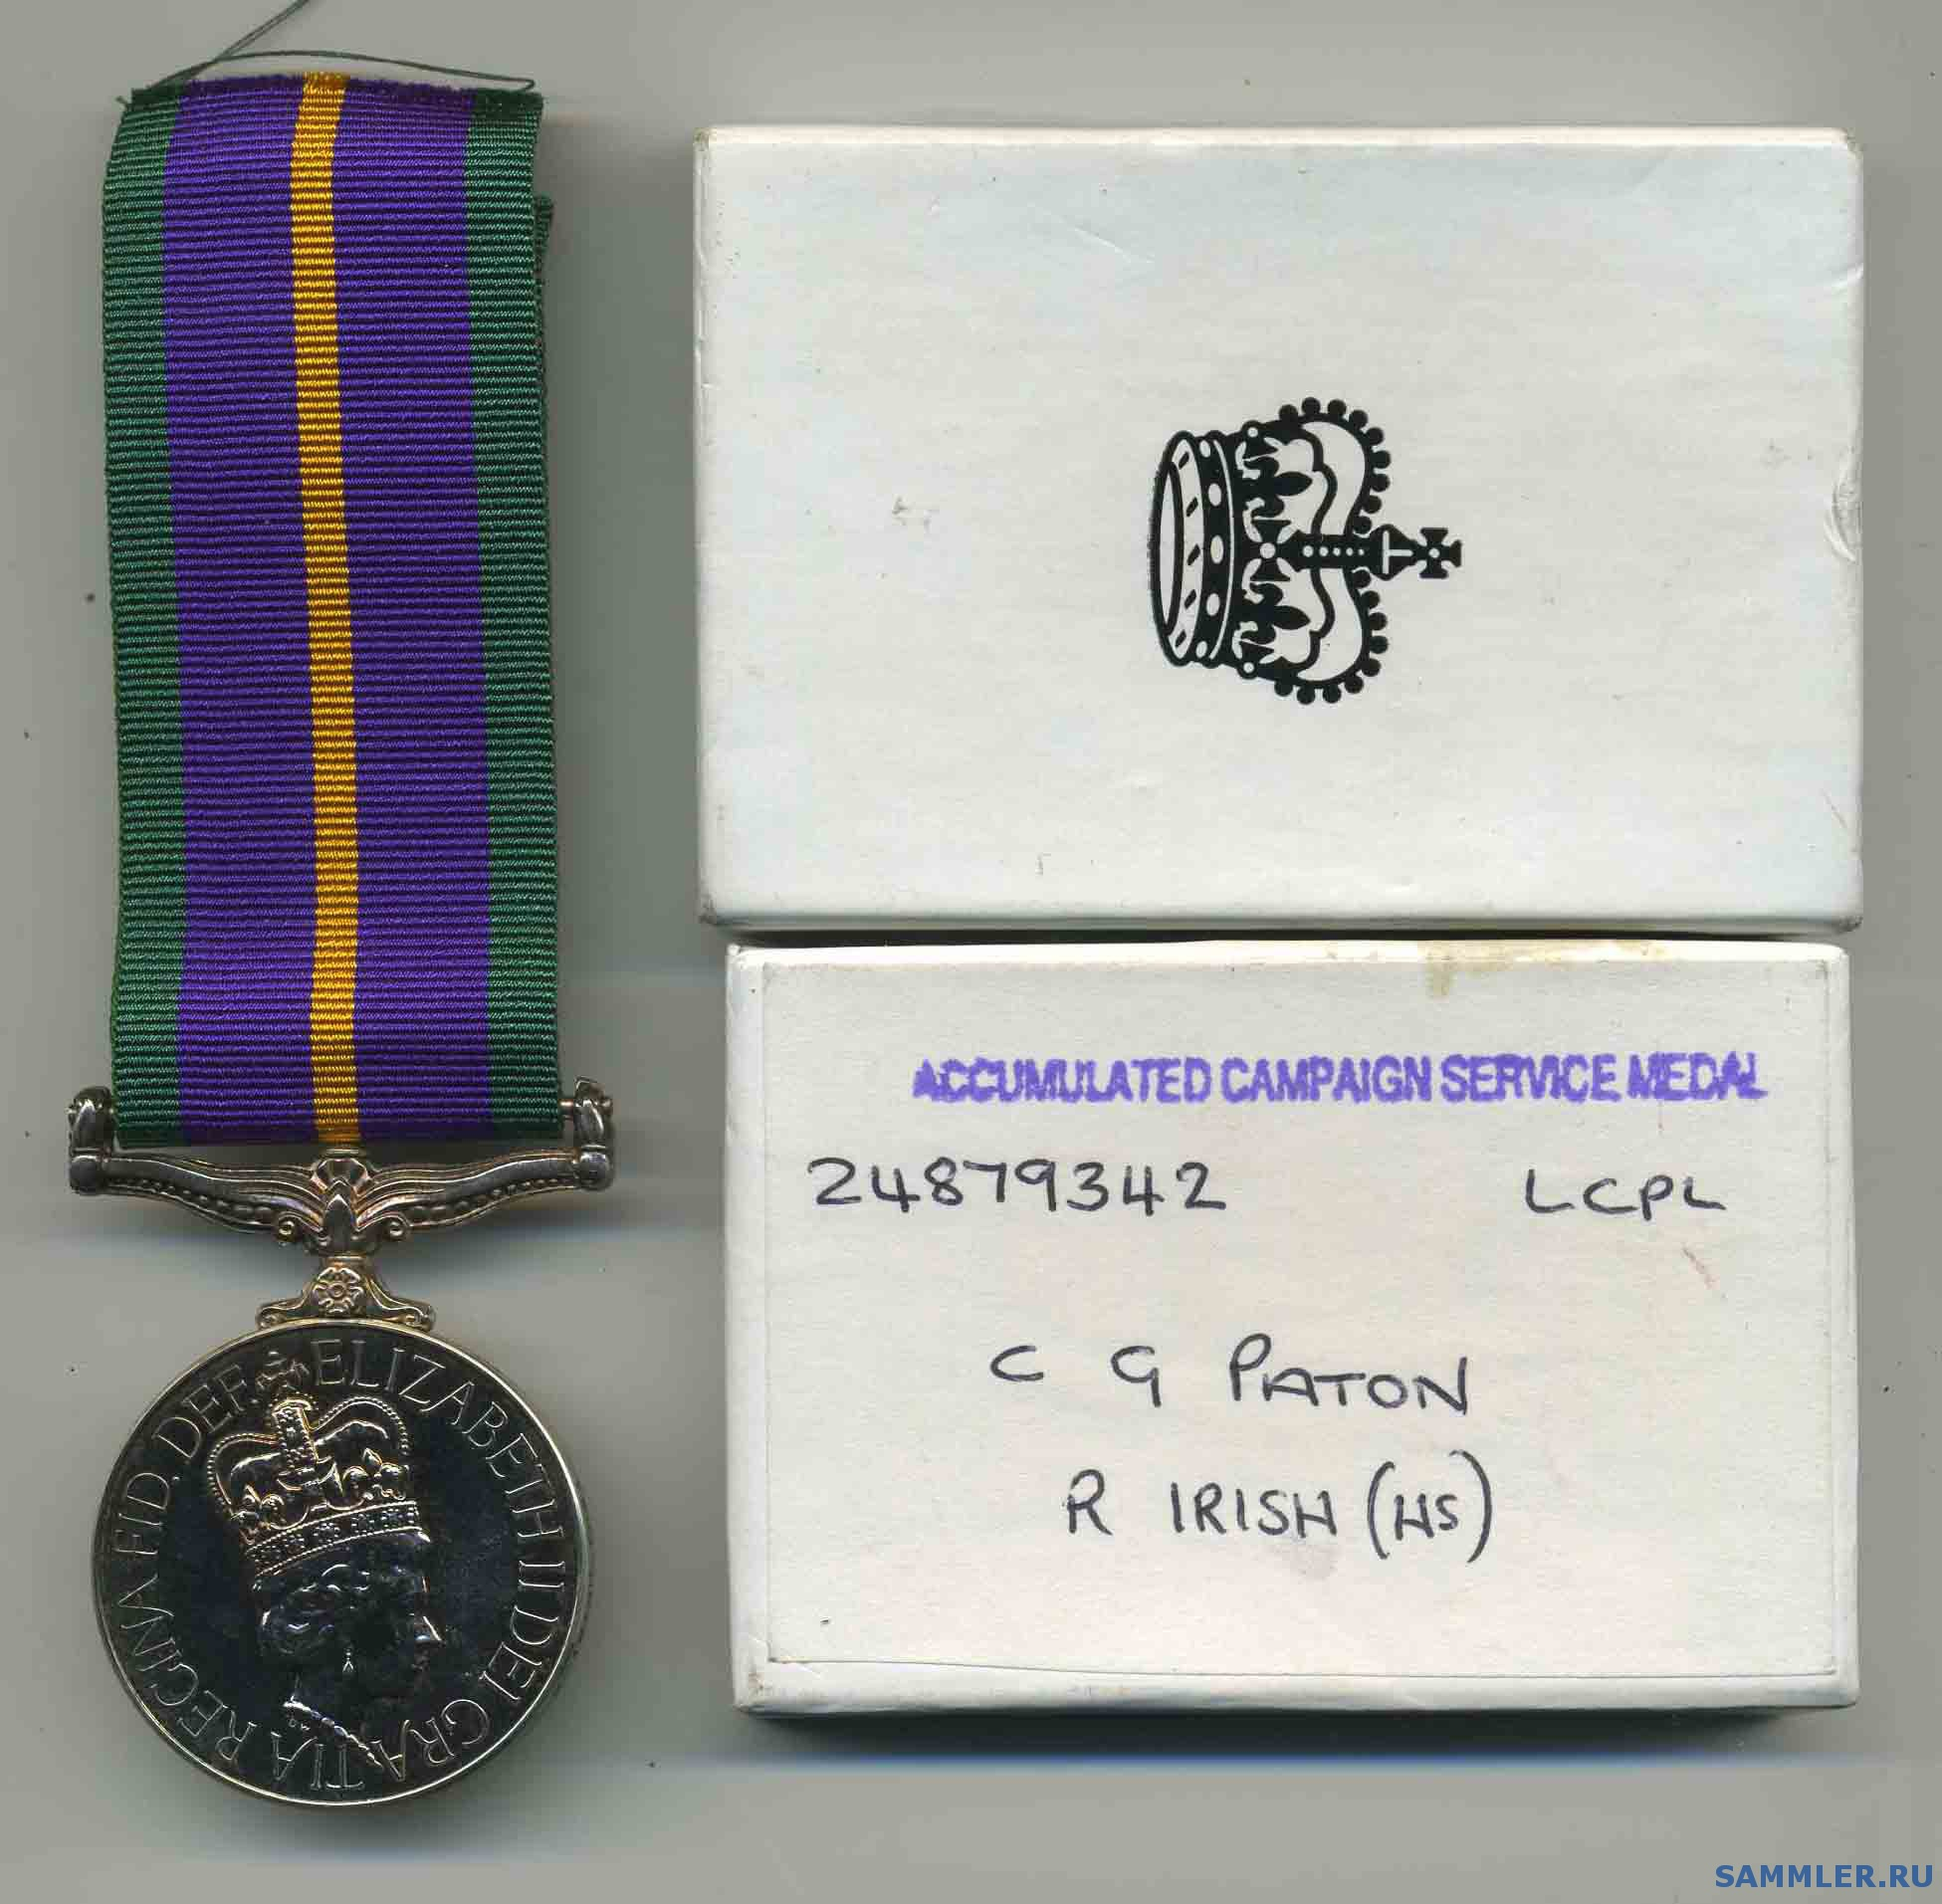 Accumulated_Campaign_Service_Medal_b.jpg